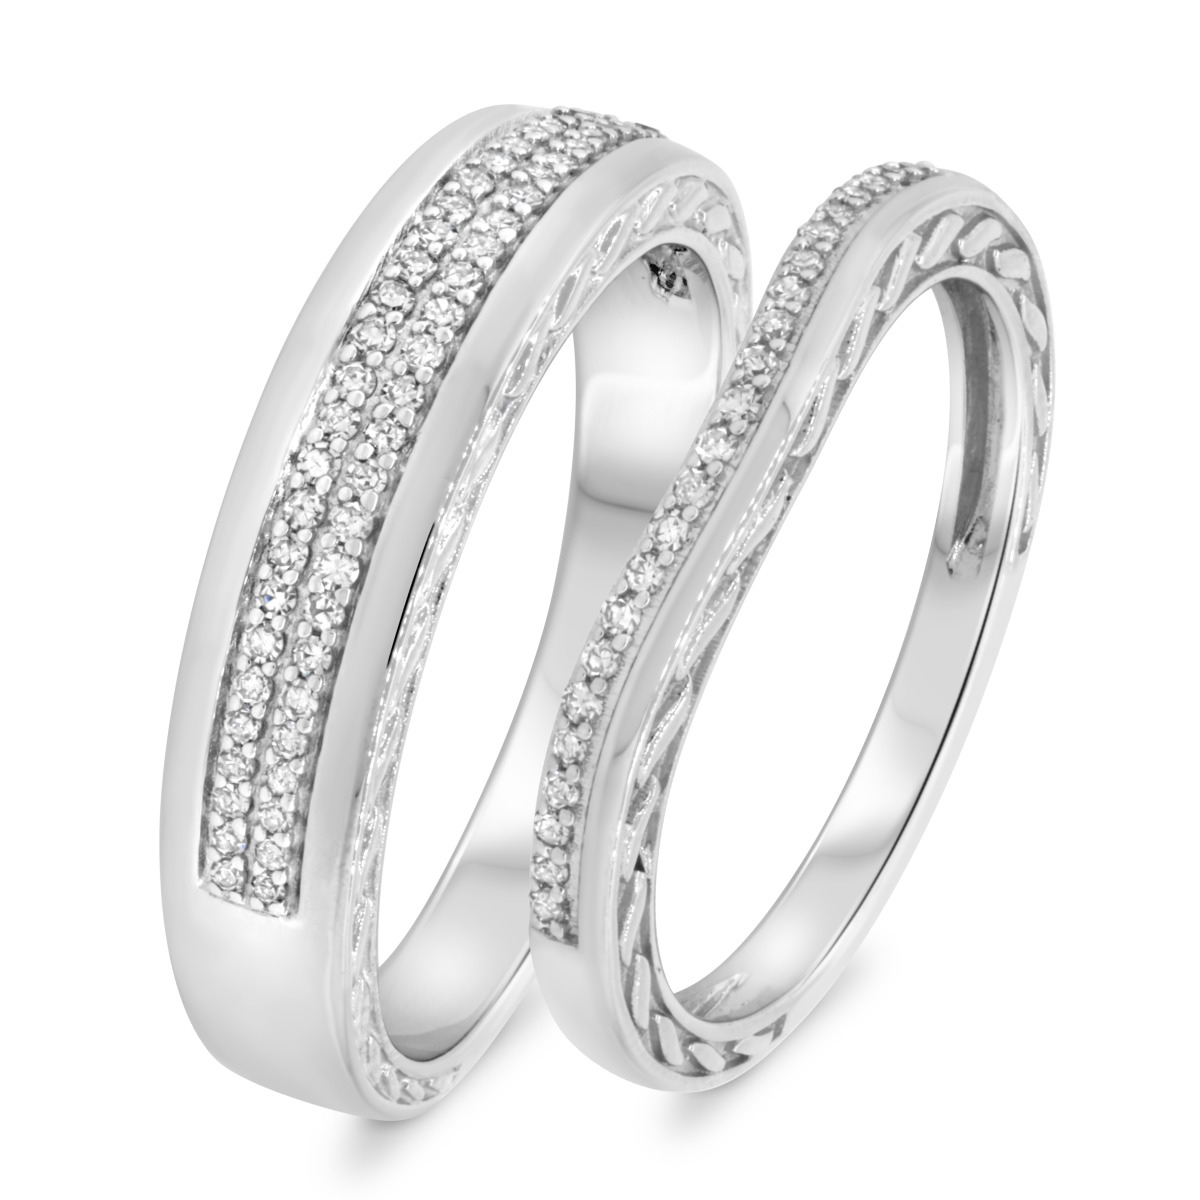 1/3 CT. T.W. Diamond Matching Wedding Band Set 10K White Gold